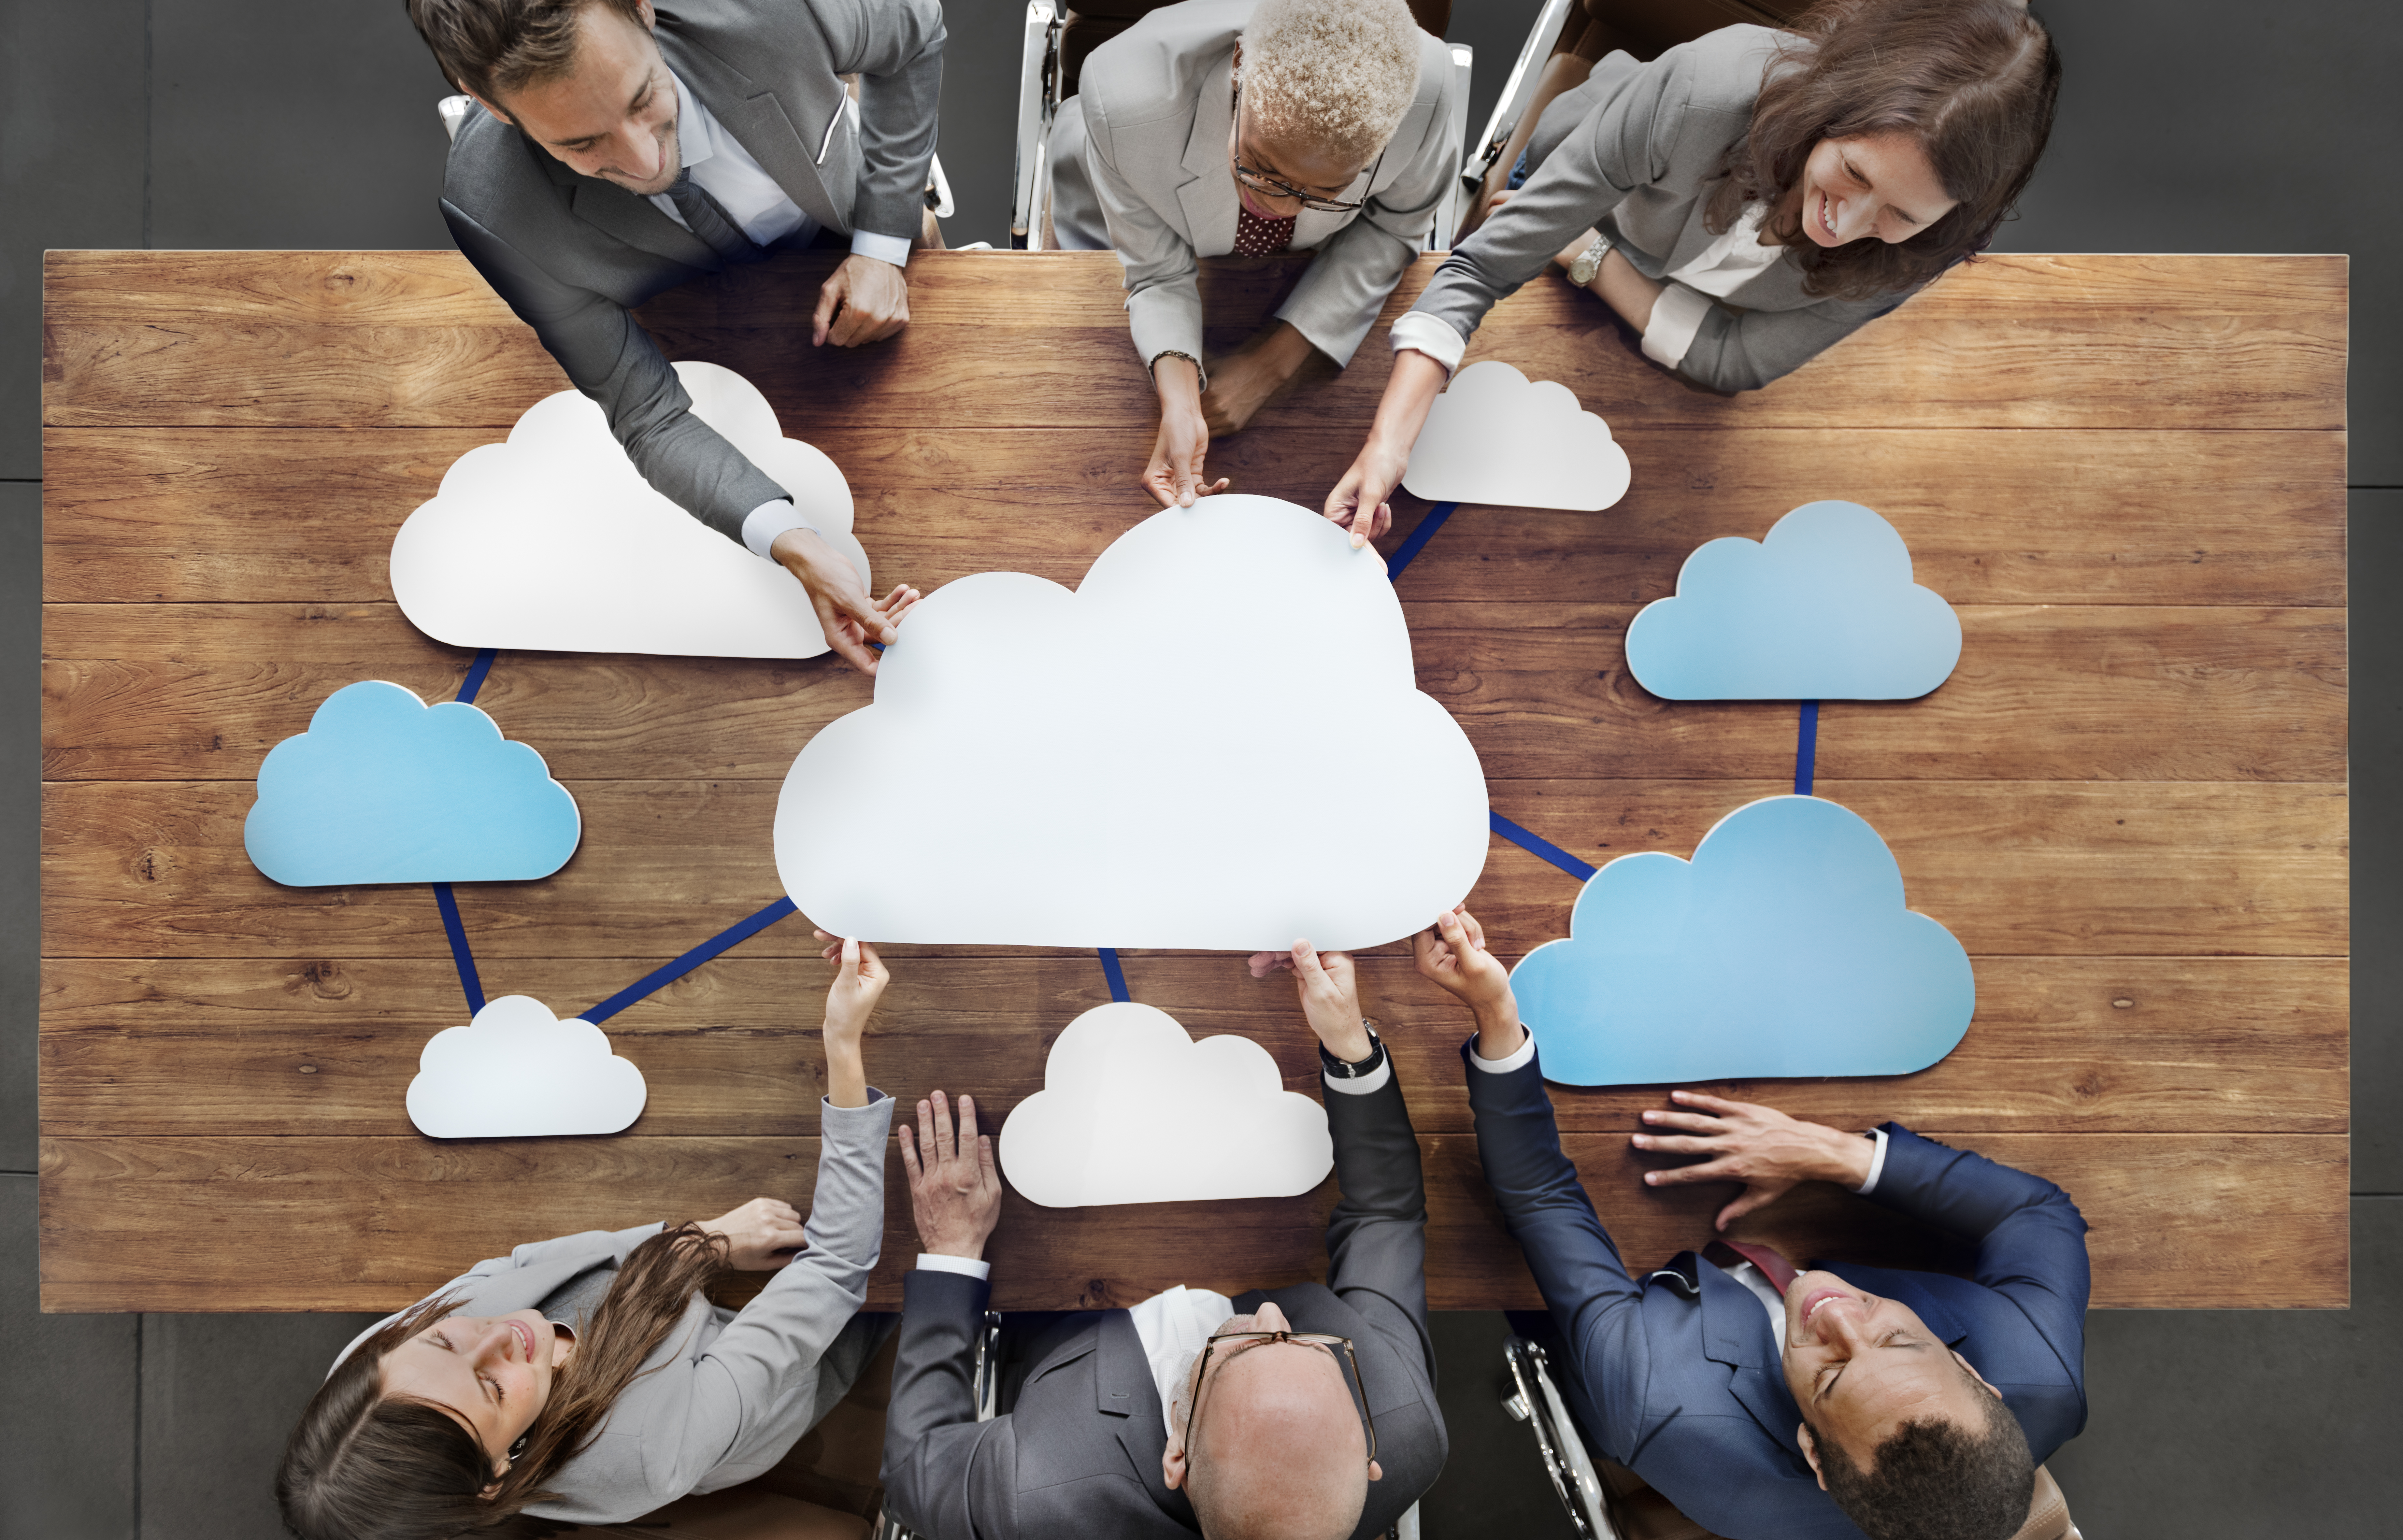 Business,People,Joining,Cloud,Teamwork,Concept